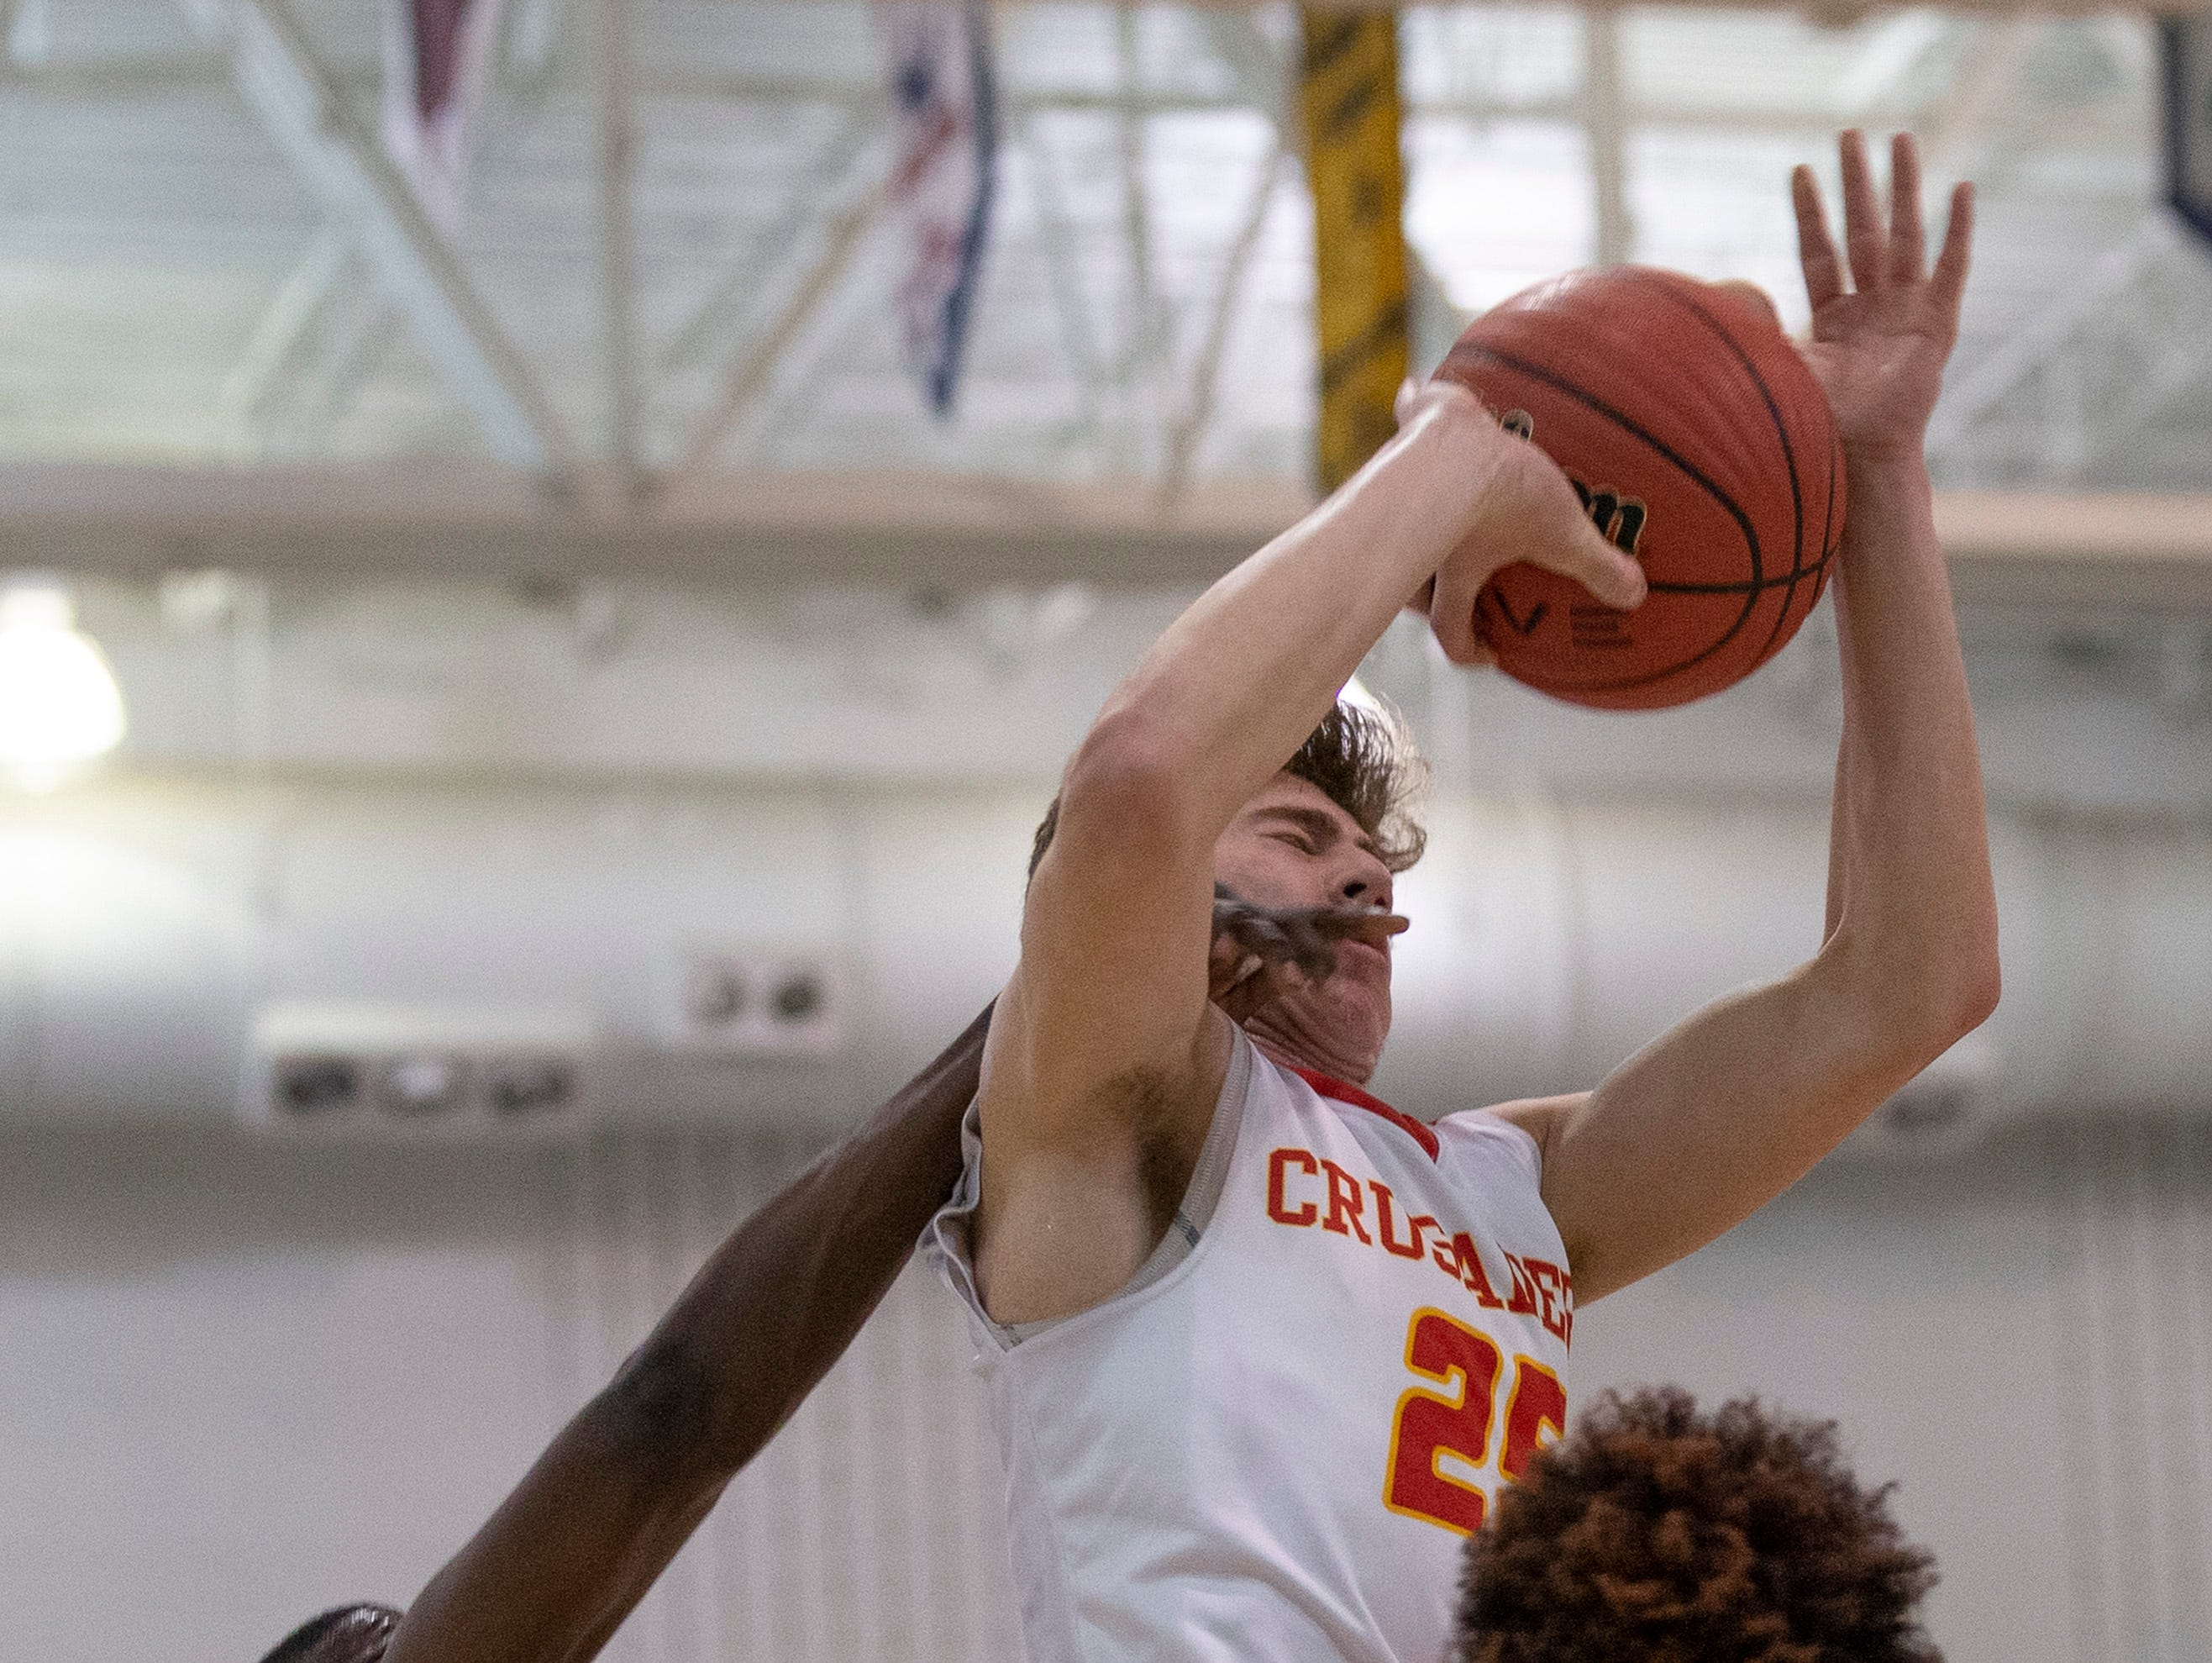 East Side's Nasir Johnson hits Bergen Catholic's Doug Edert as he goes up with a shot. Bergen Catholic vs. Newark East Side in the 5:30 p.m. semifinals of the 2019 NJSIAA Tournament of Champions in Toms River on March 15, 2019.